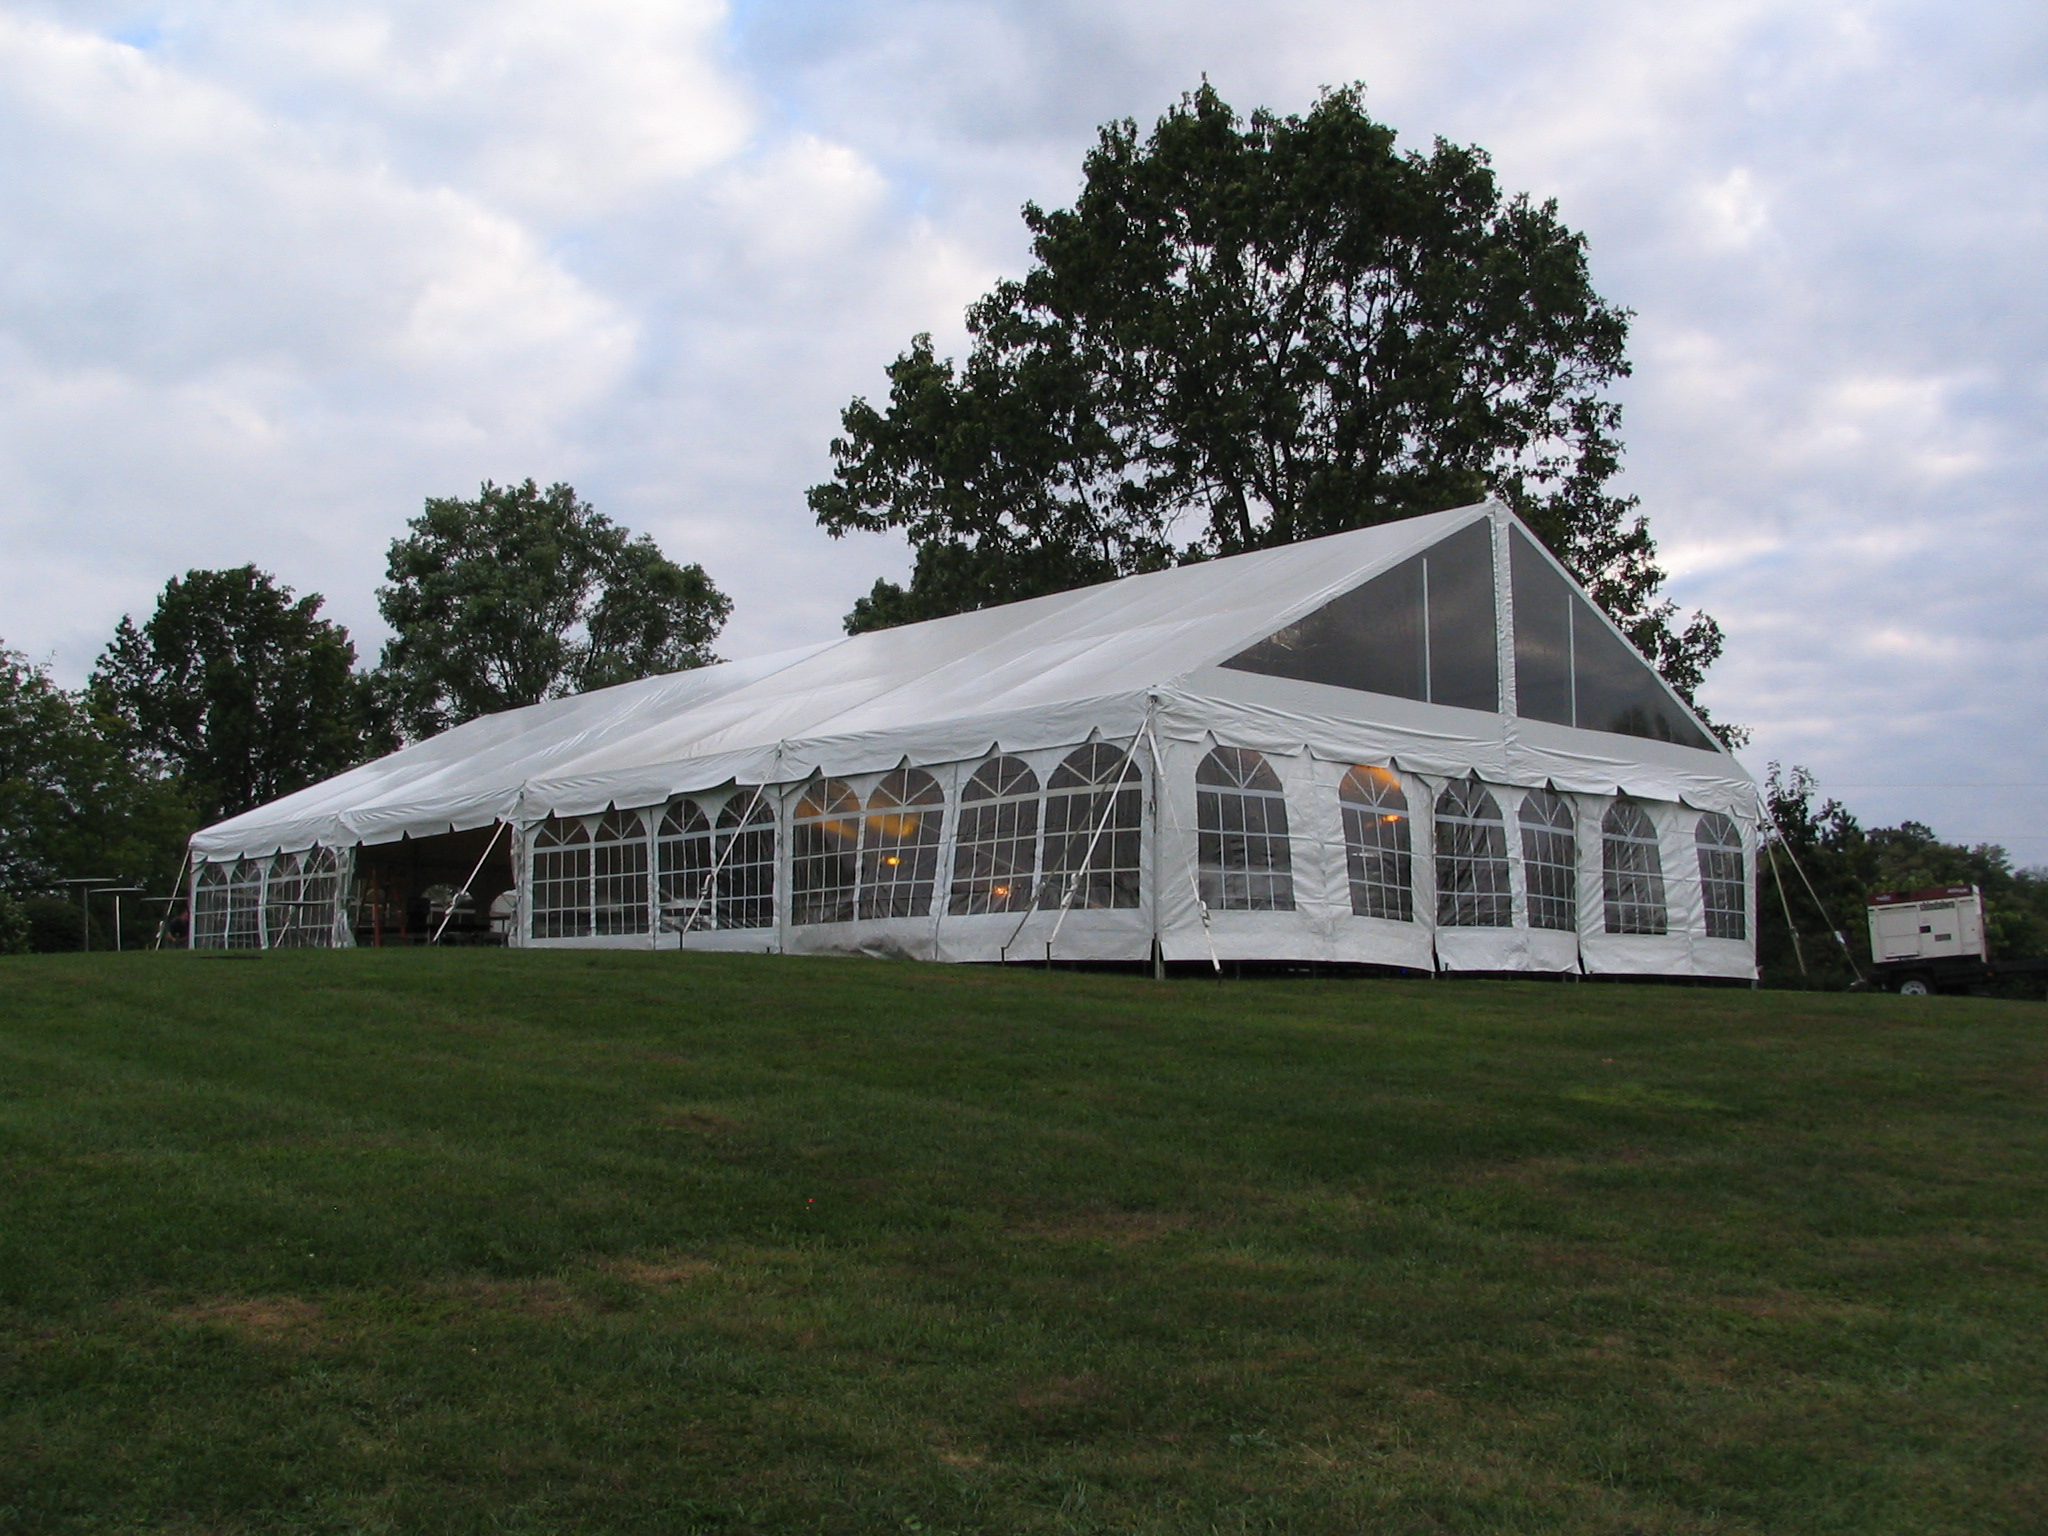 Wedding tents for rent in Allentown PA